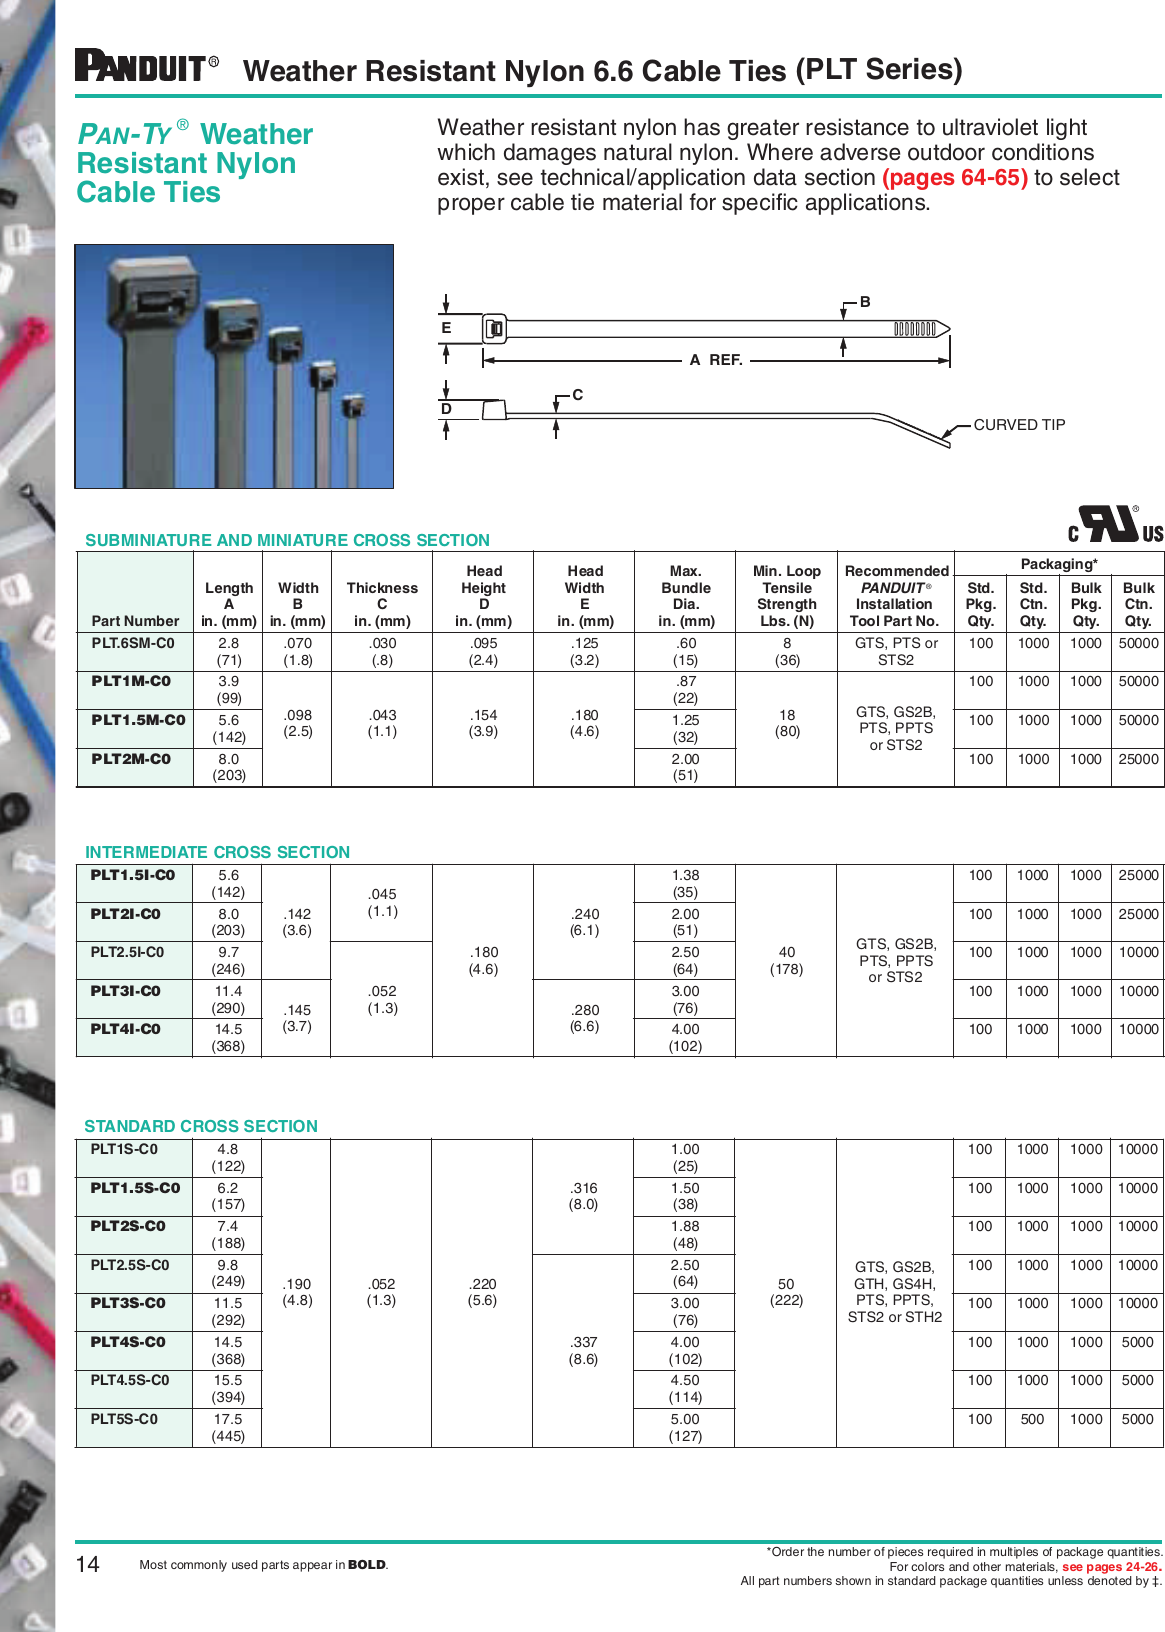 .047 Thickness 0.19 Width Curved Tip Standard Cross Section Nylon 6.6 Panduit PLC3S-S10-C Pan-Ty Clamp Tie Pack of 100 3 Max Bundle Diameter 50lbs Min Tensile Strength #10 Screw Size 12 Length 0.2 Nominal Hole Diameter Plenum-Rated